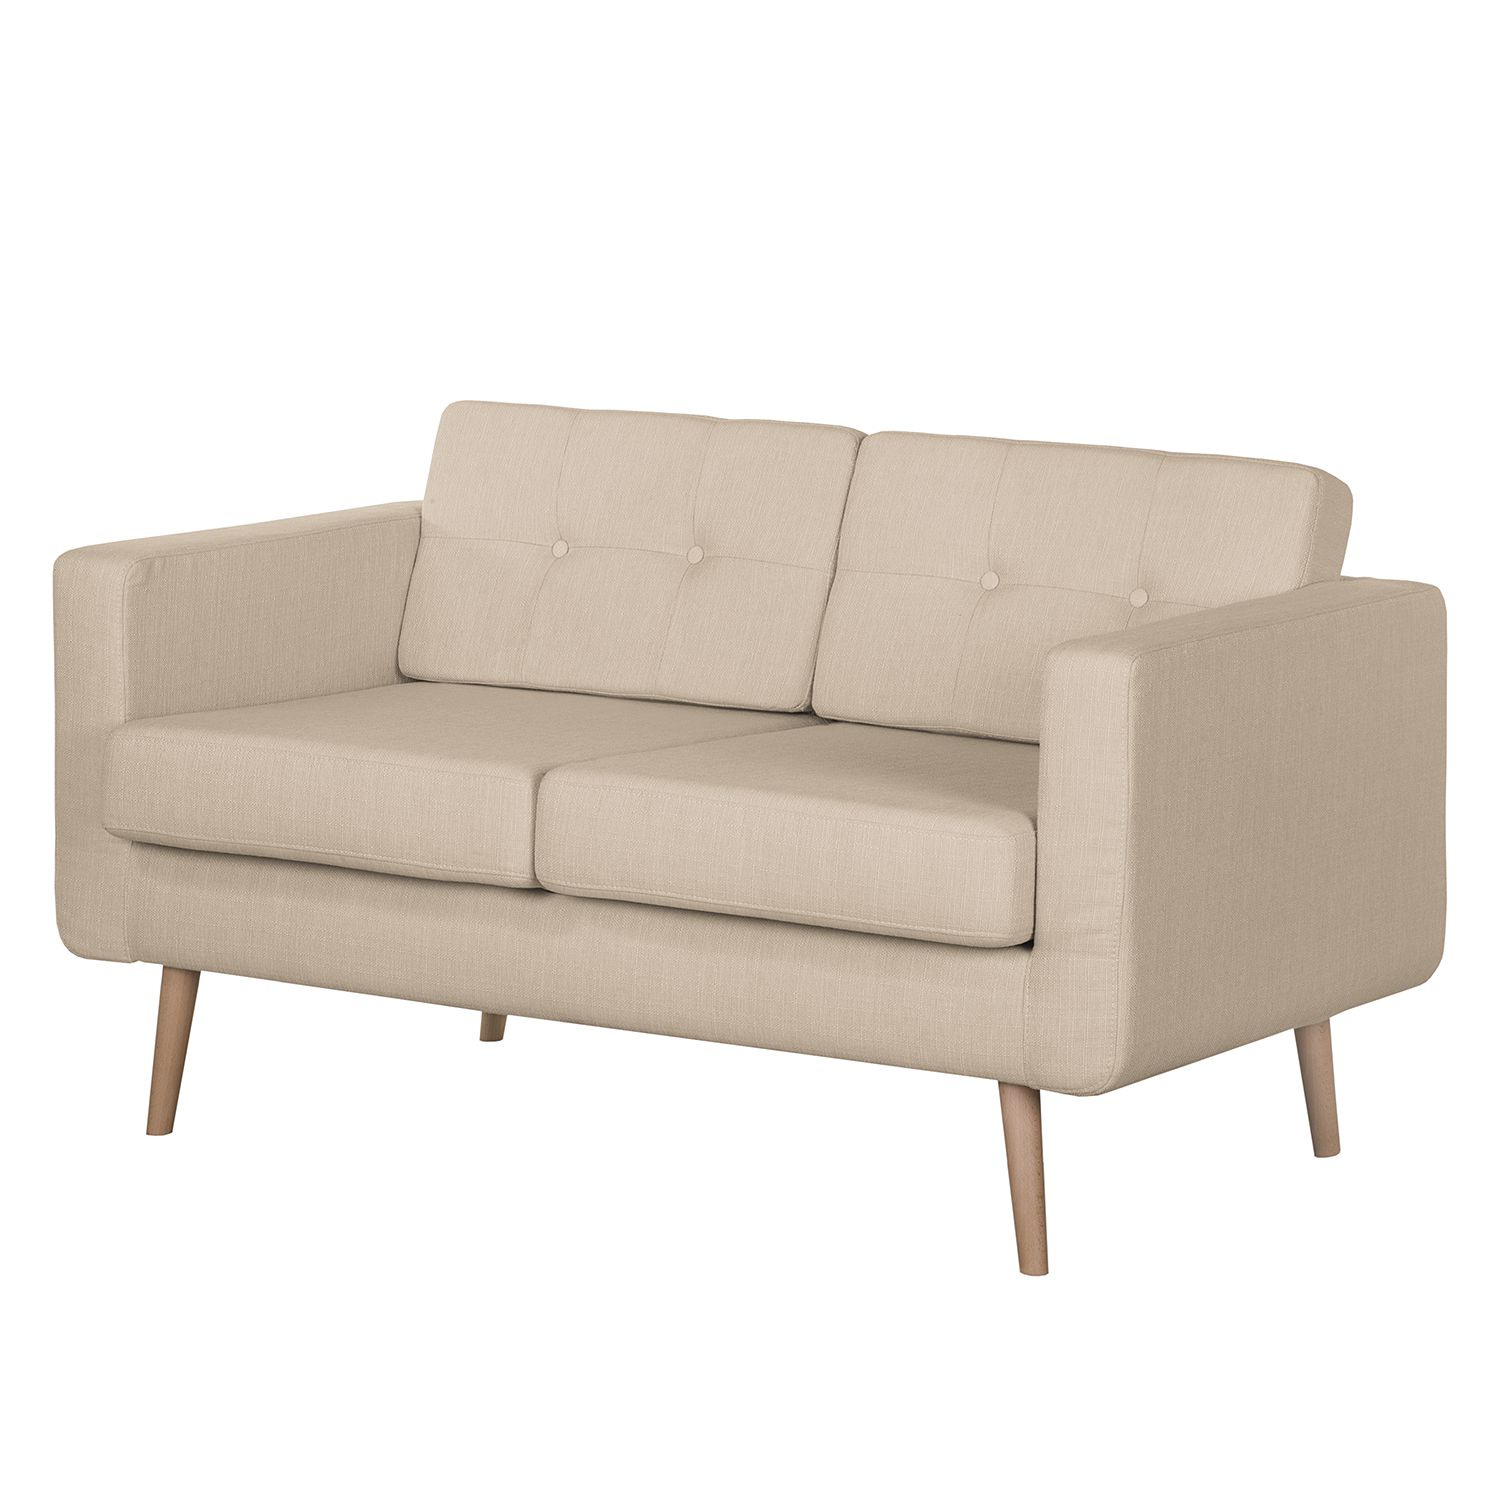 Sofa Aira II (2-Sitzer) - Webstoff - Cappuccino, kollected by Johanna